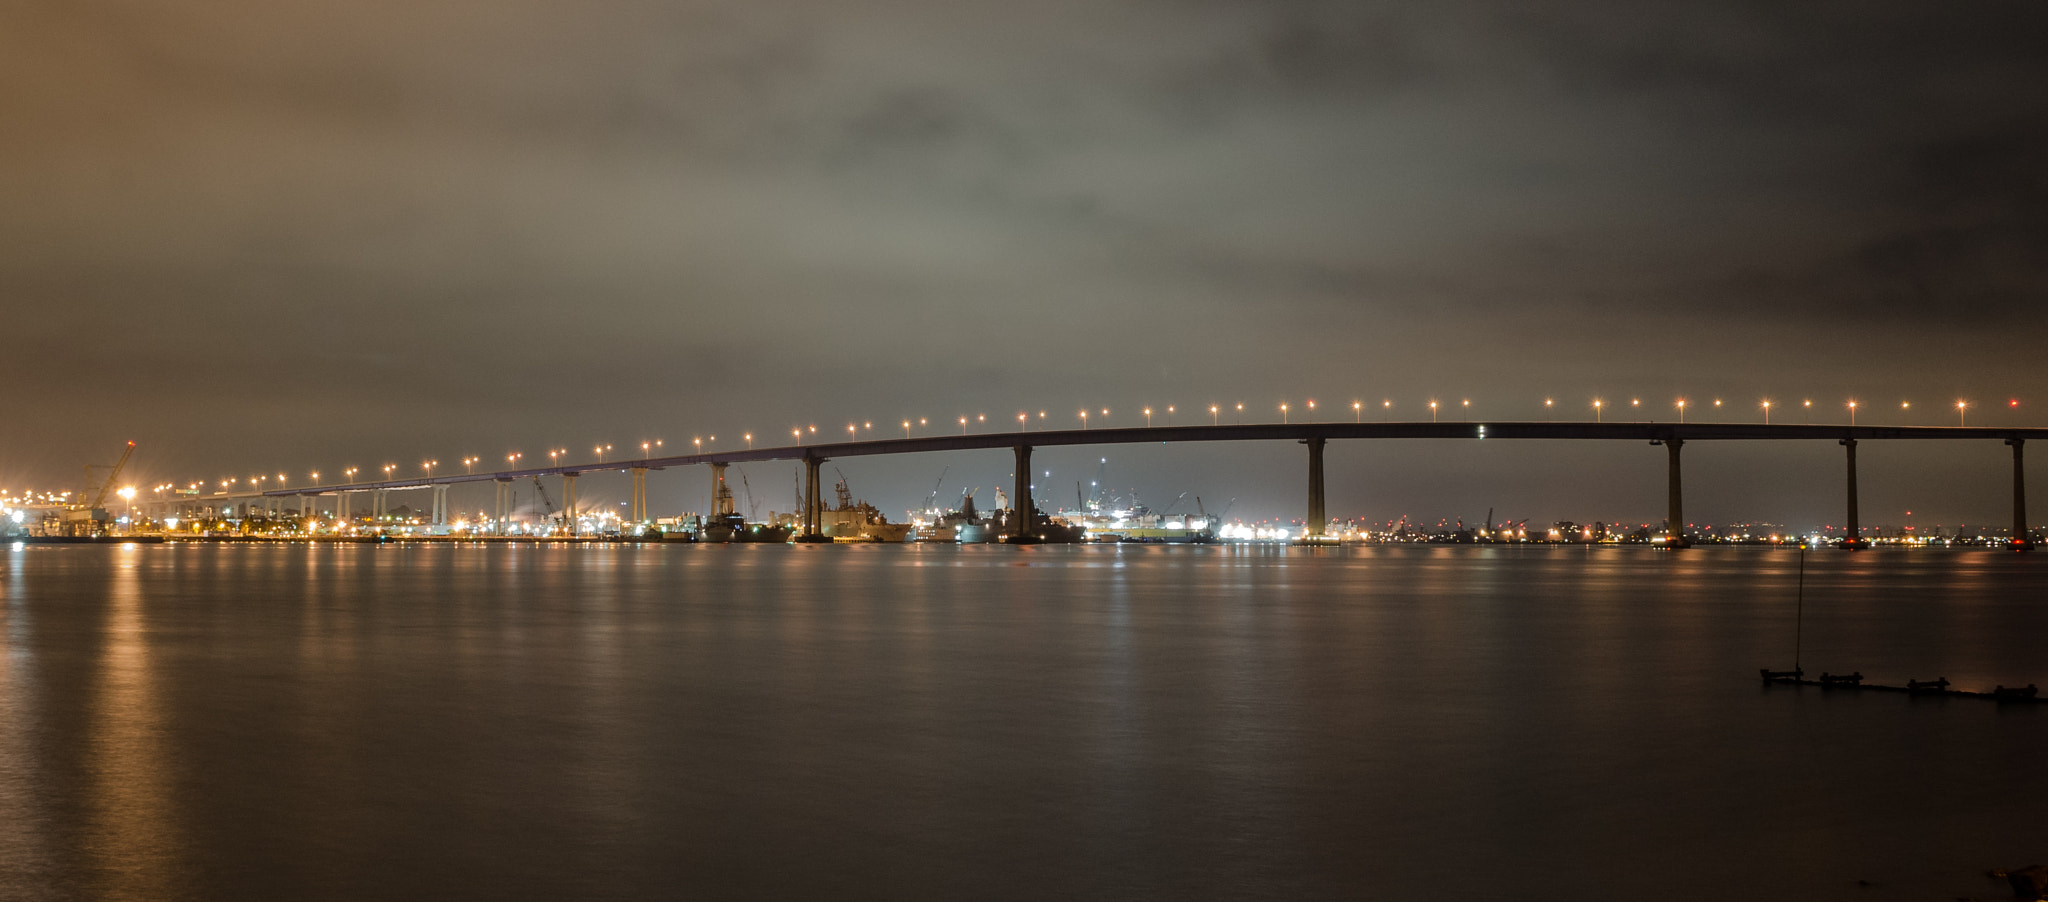 Photograph Bay Bridge by Jim Wells on 500px